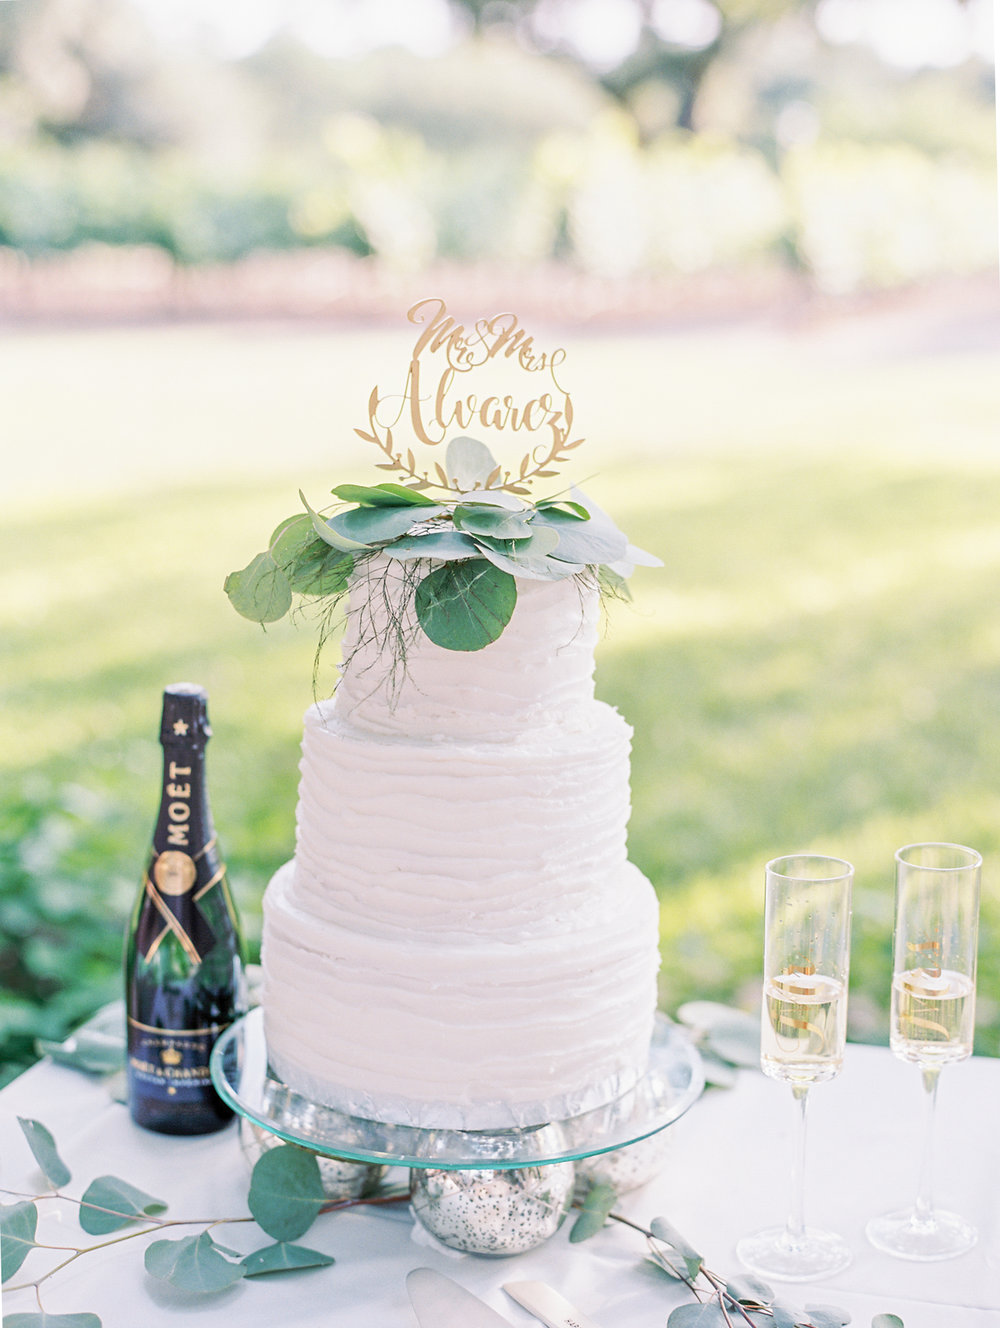 Elegant Spring Vineyard Wedding | Film Wedding Photographer | Austin Wedding Photographer | Simple White Wedding Cake with Flowers | Britni Dean Photography // britnidean.com